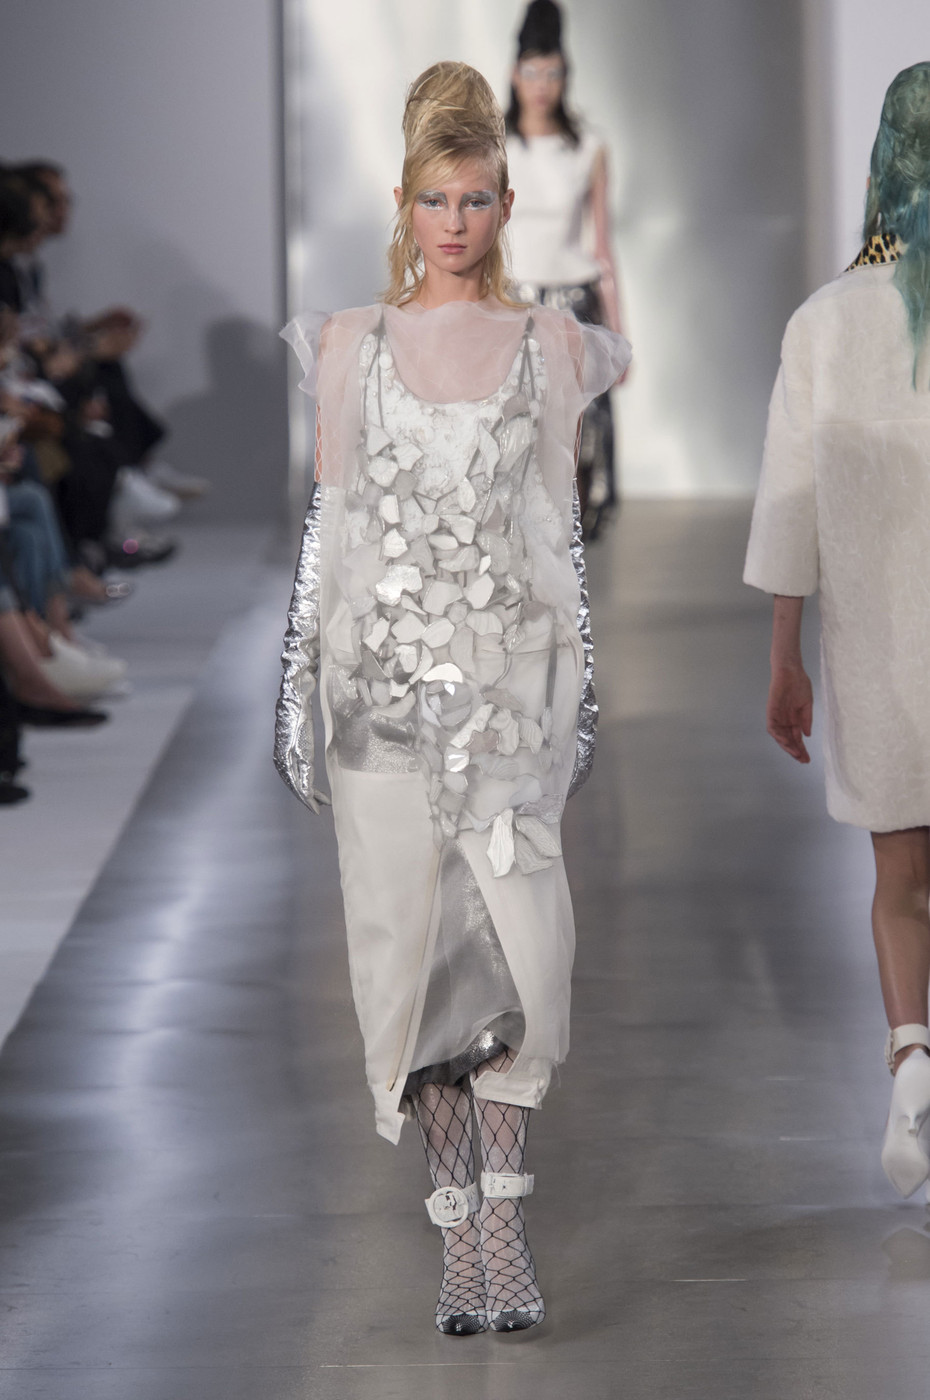 Maison margiela at paris fashion week spring 2016 livingly for Fashion maison